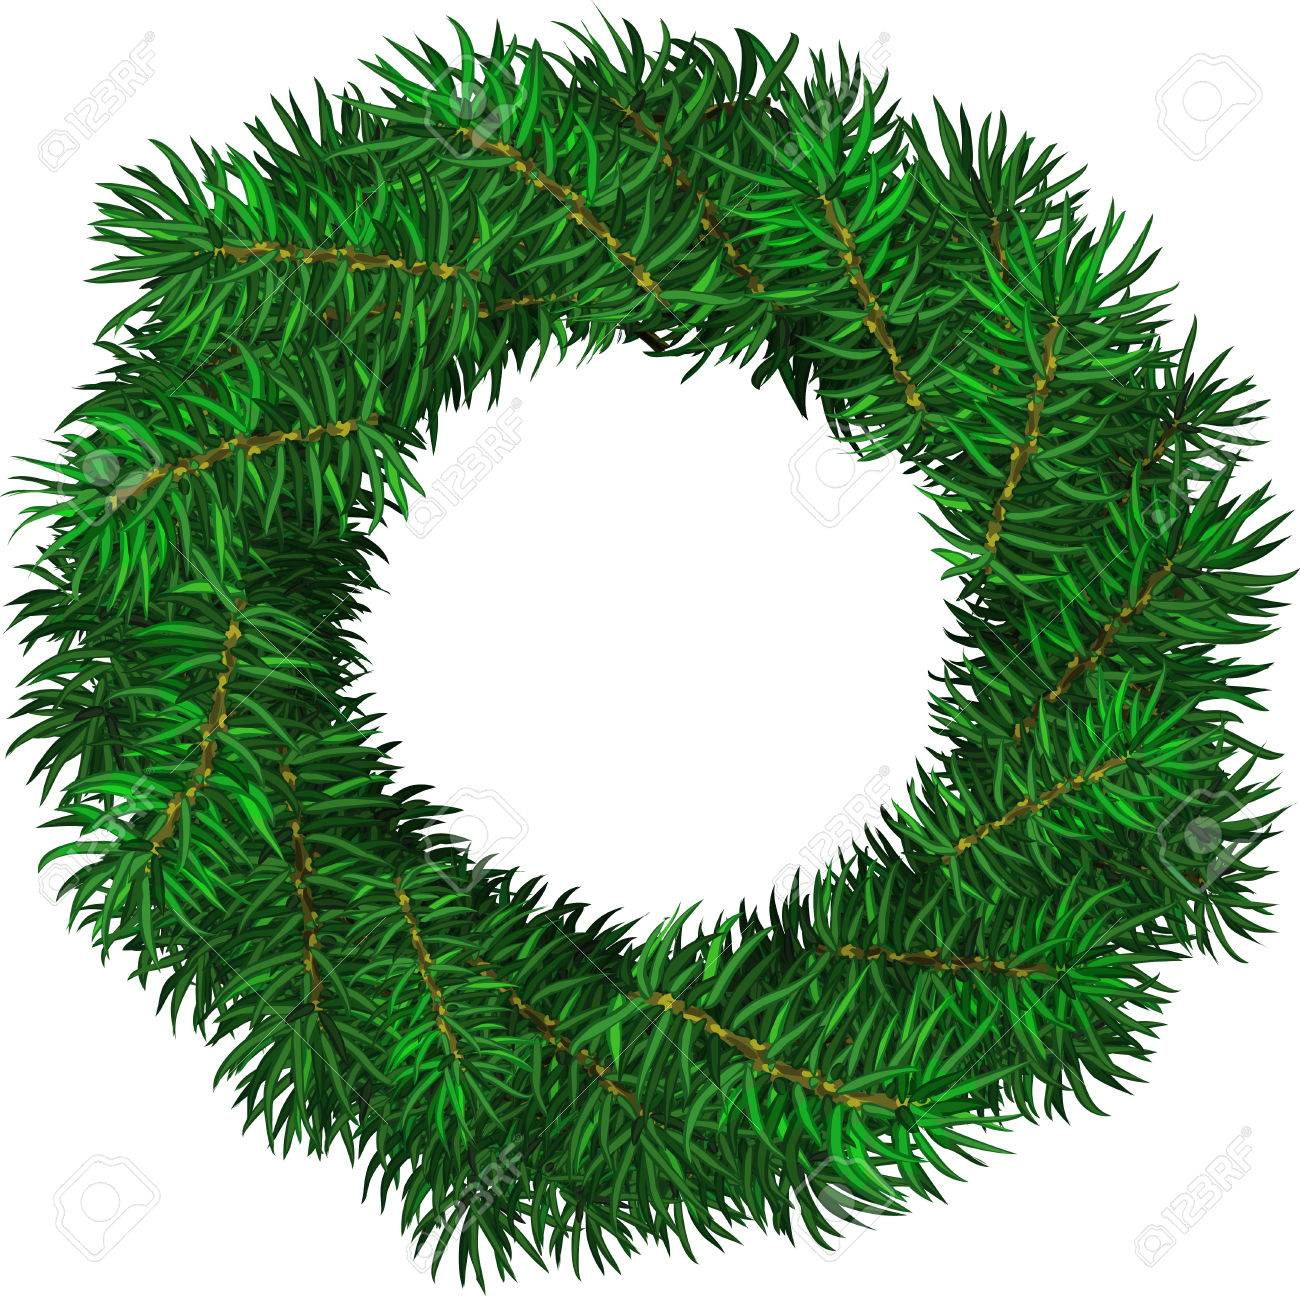 simple evergreen holiday wreath in circular shape vector isolated